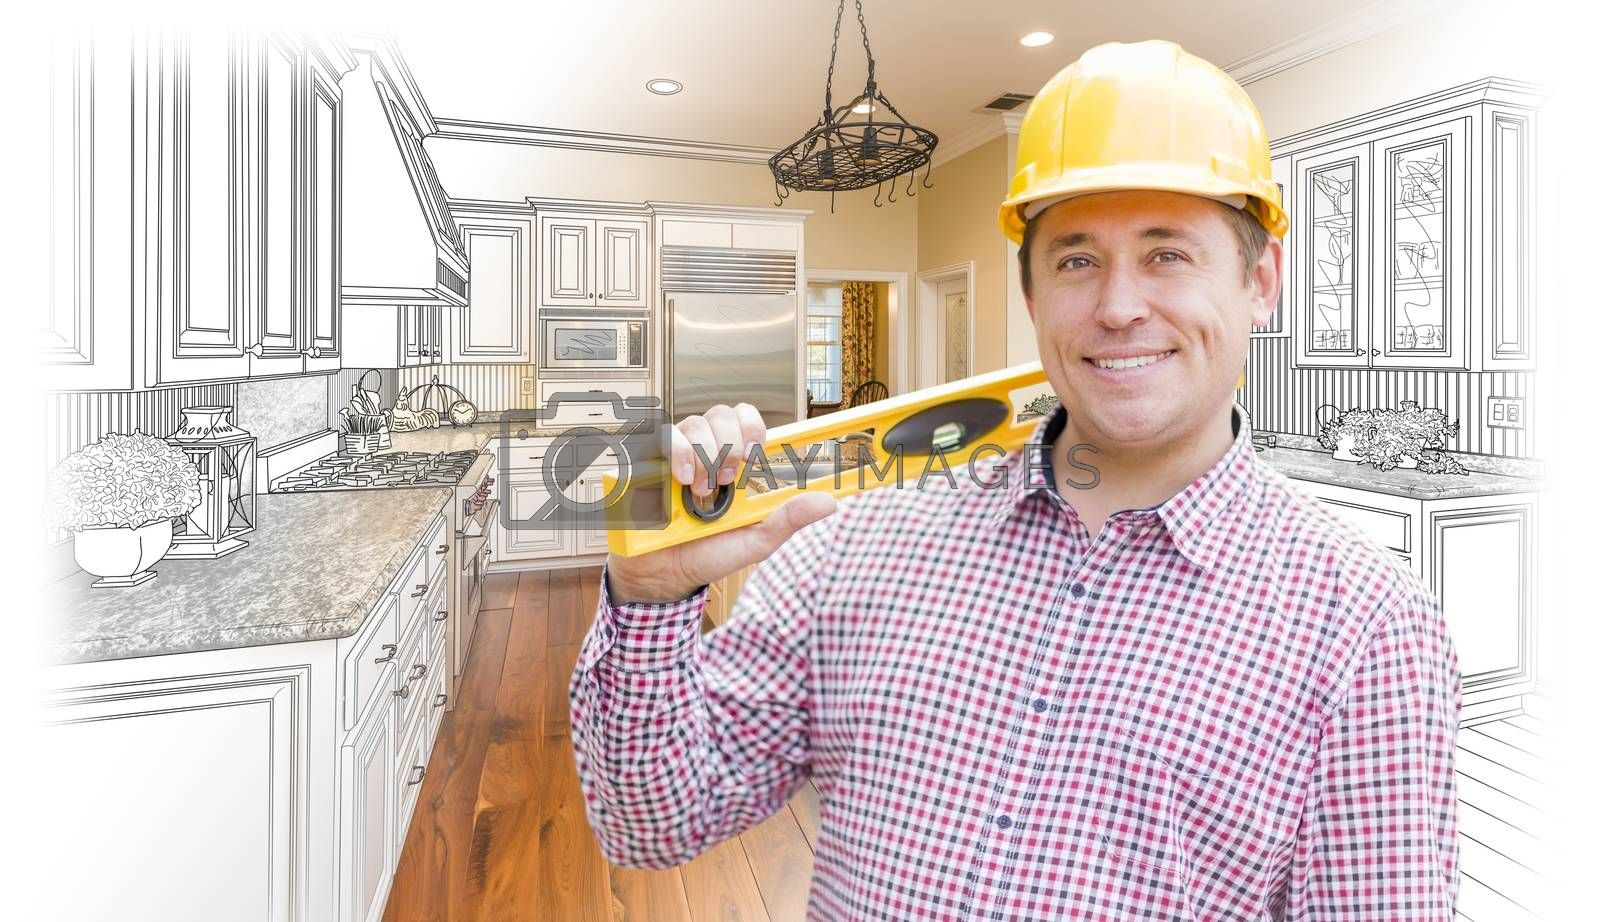 Royalty free image of Contractor in Hard Hat Over Custom Kitchen Drawing and Photo by Feverpitched